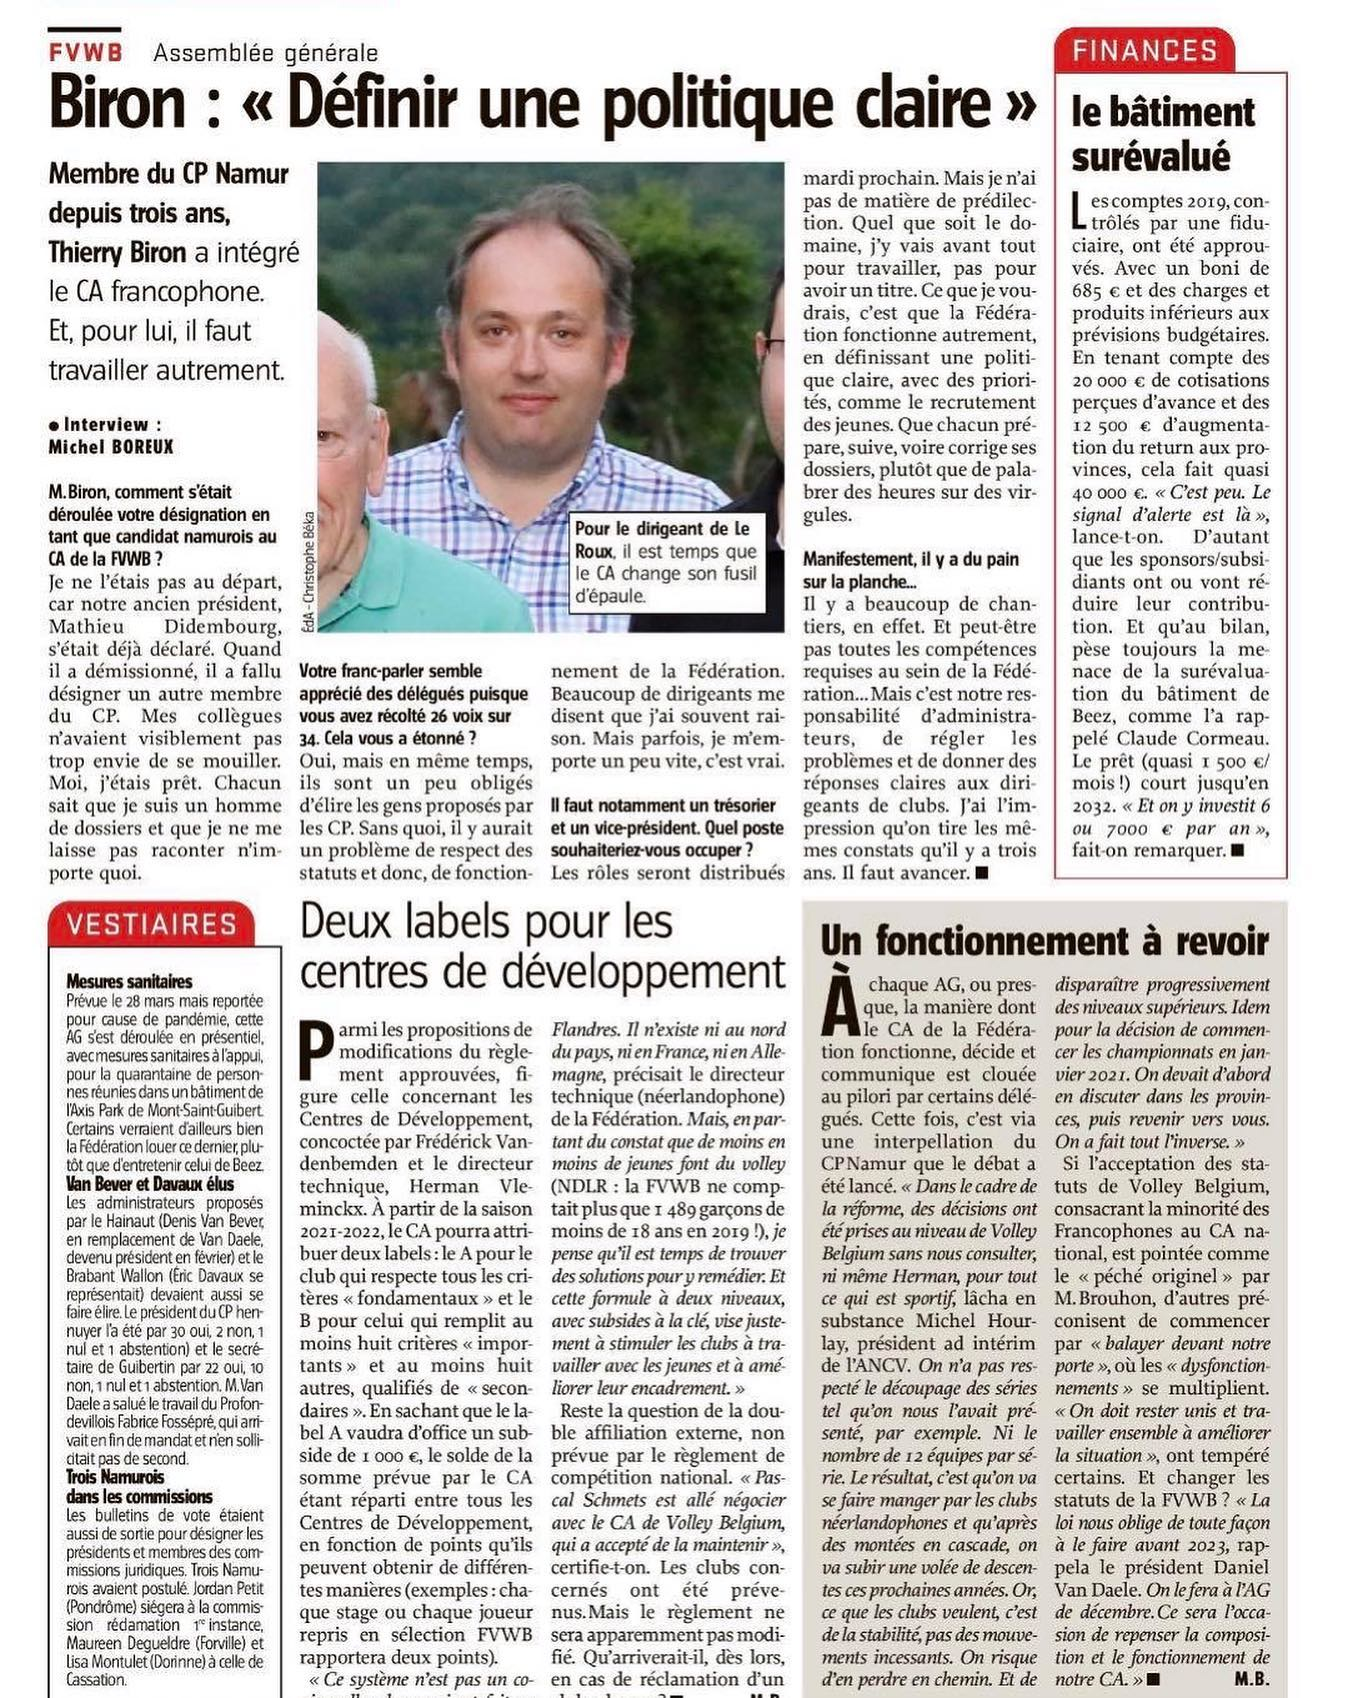 Article de presse du 17 juin 2020